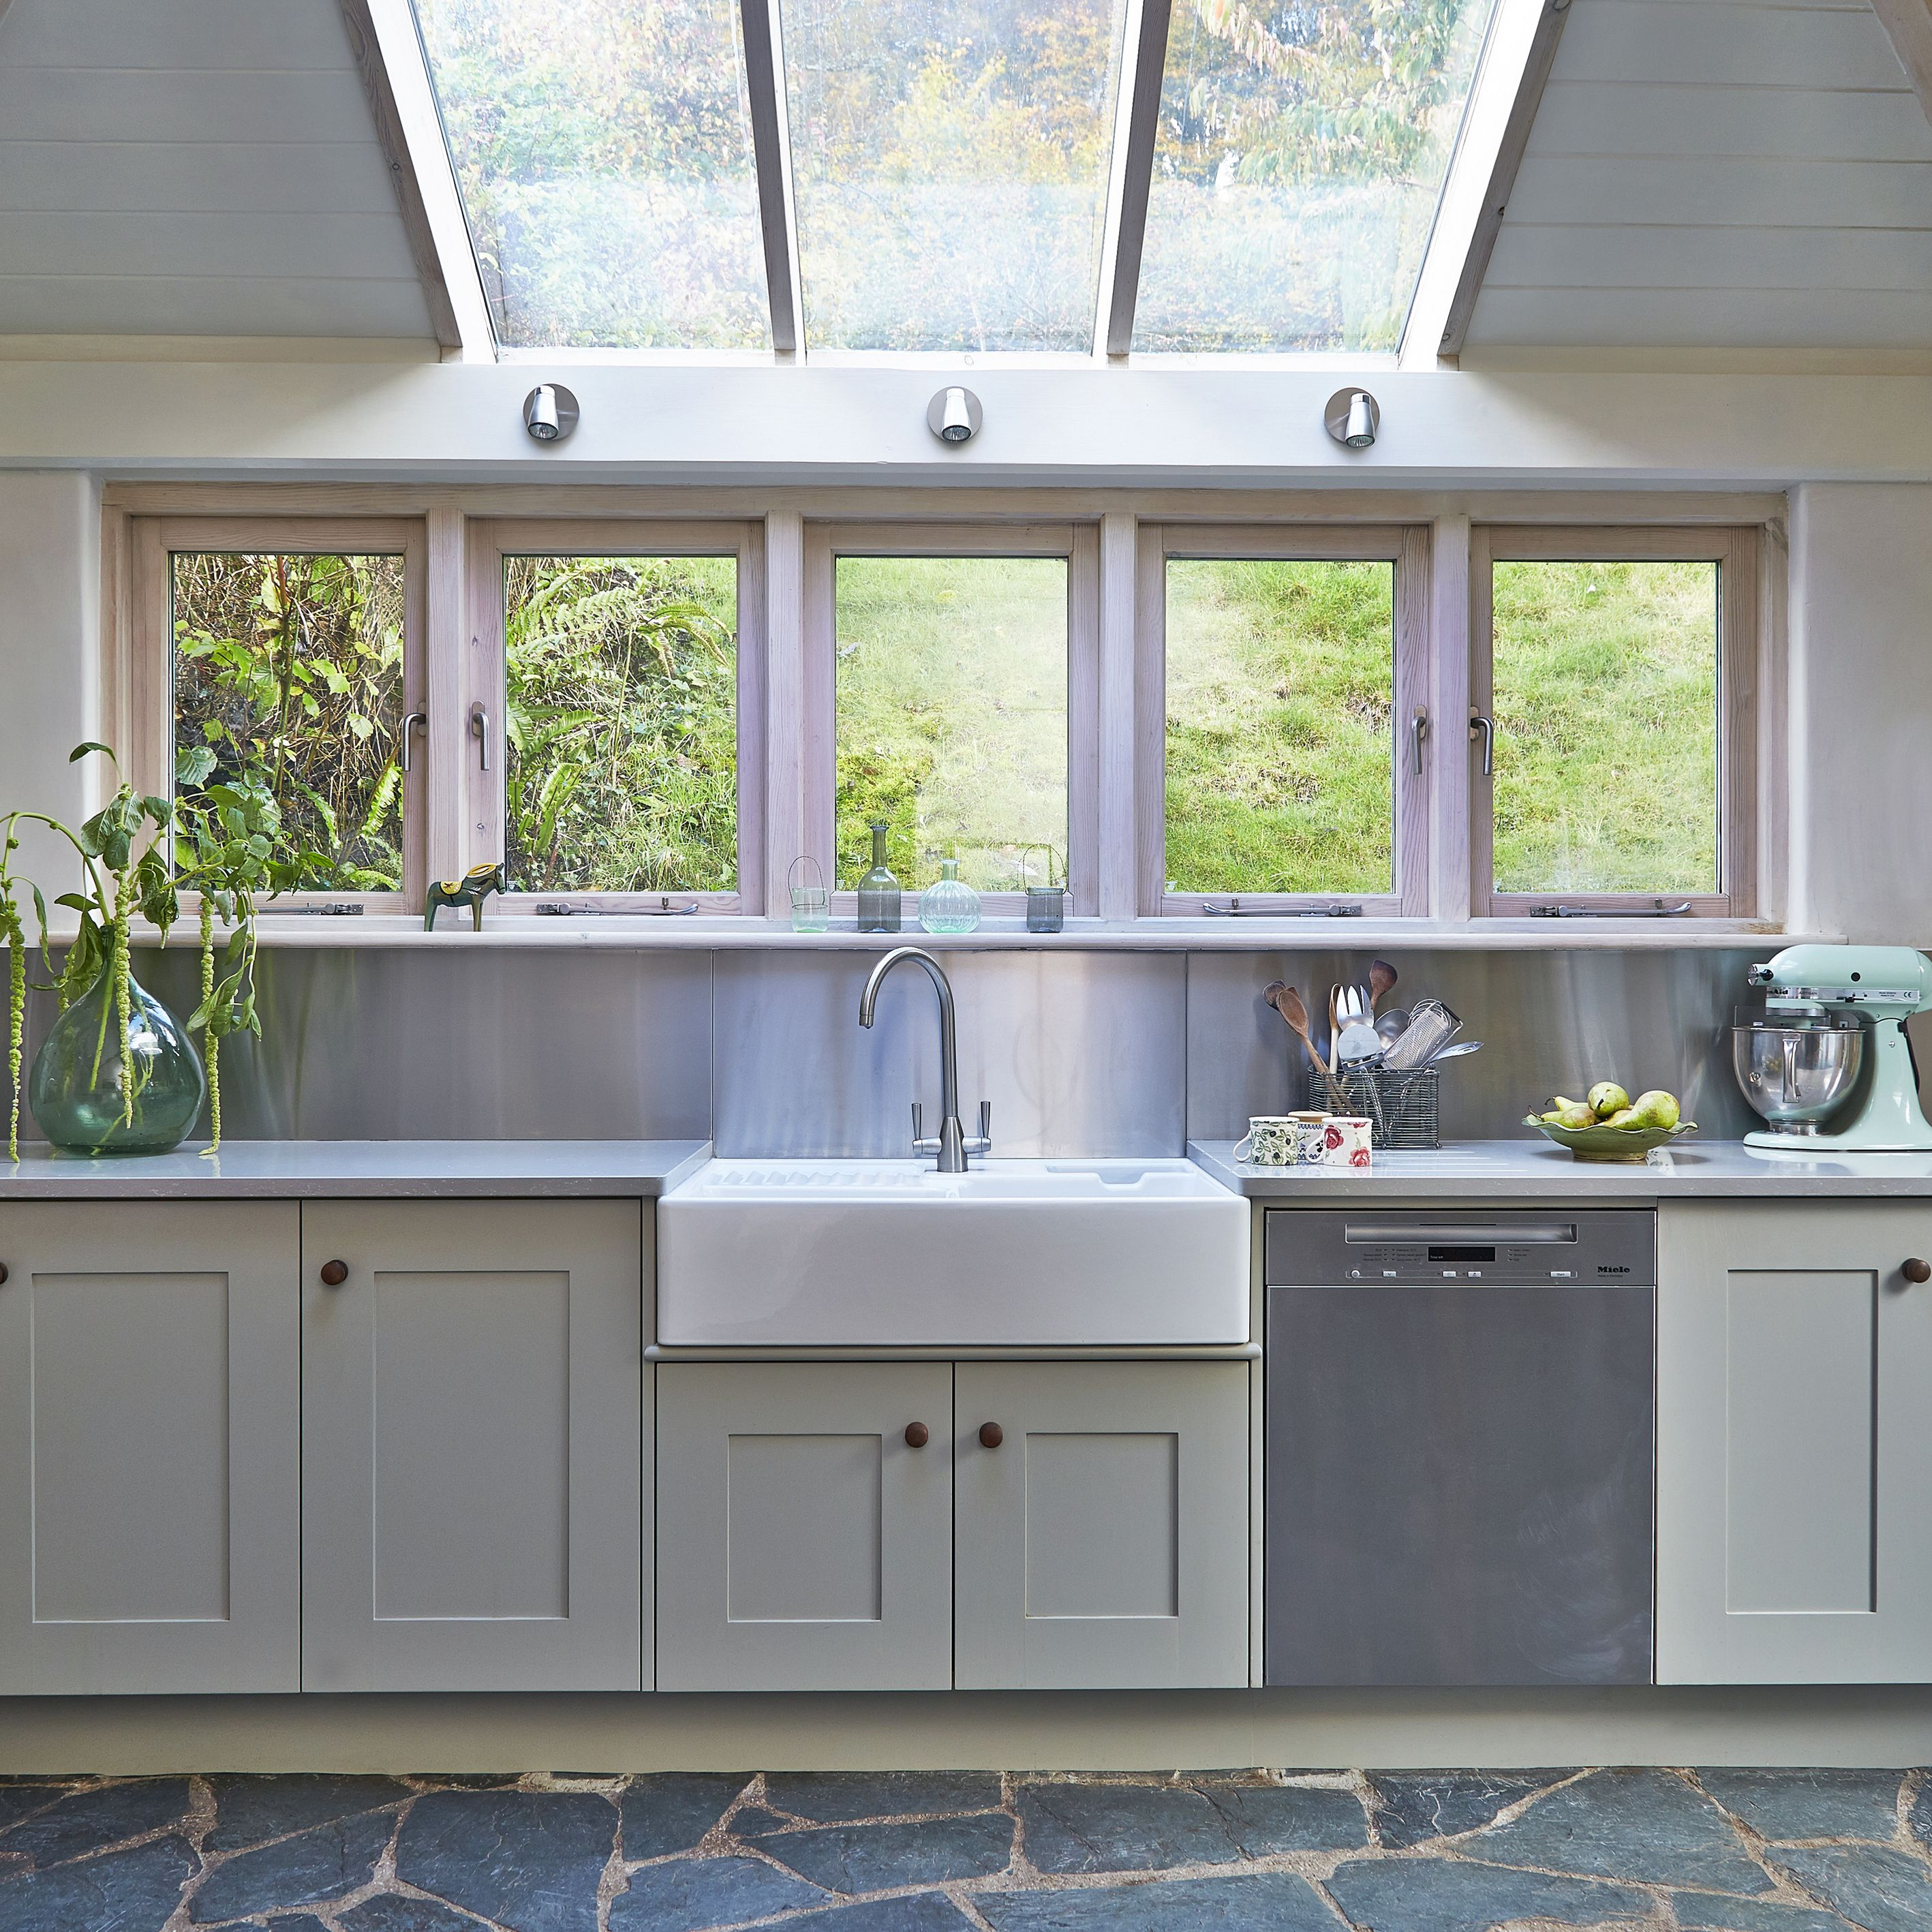 Bespoke Kitchen Design Painting classic and contemporary bespoke kitchen. hand crafted in devon